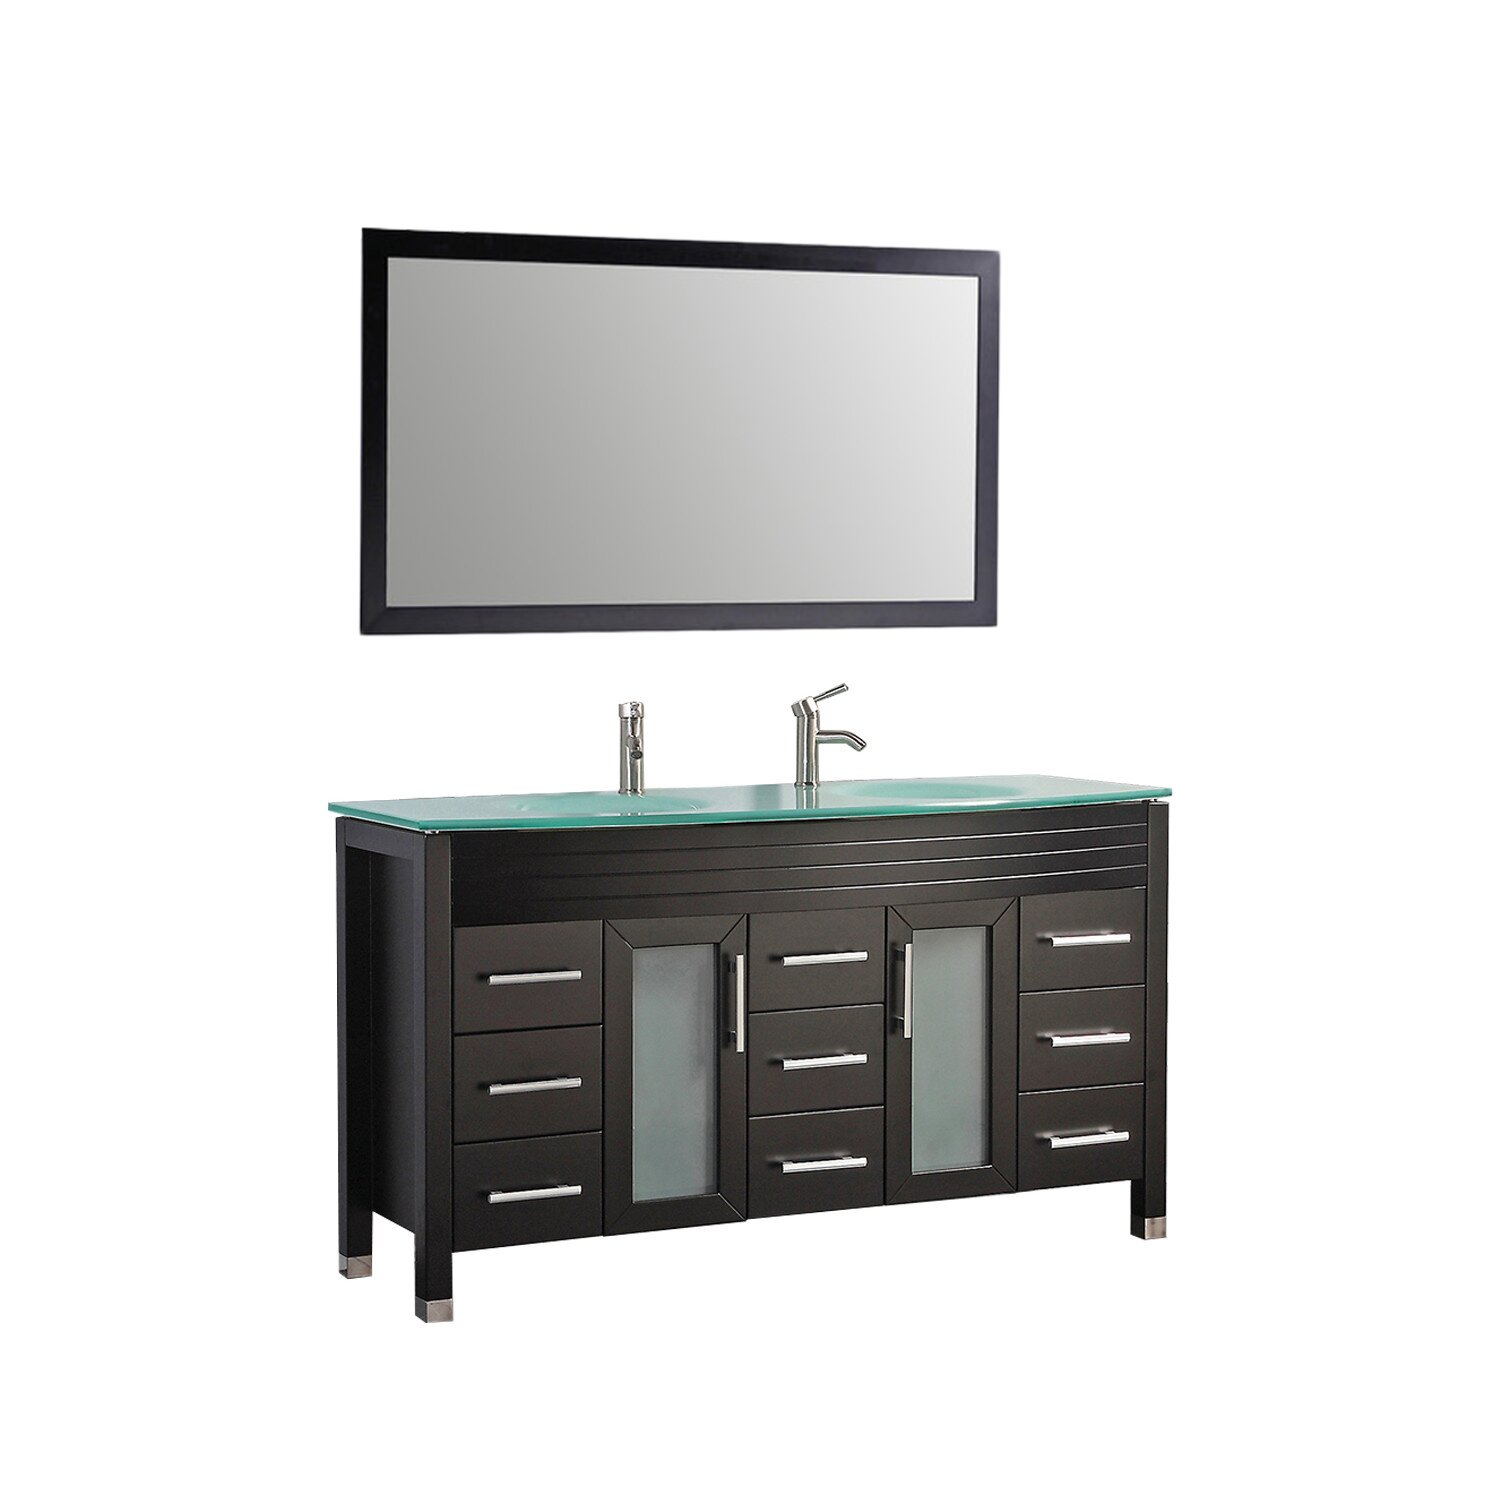 Ideas For A Diy Bathroom Vanity Better Homes And Gardens Best Ideas About 56 Double Sink